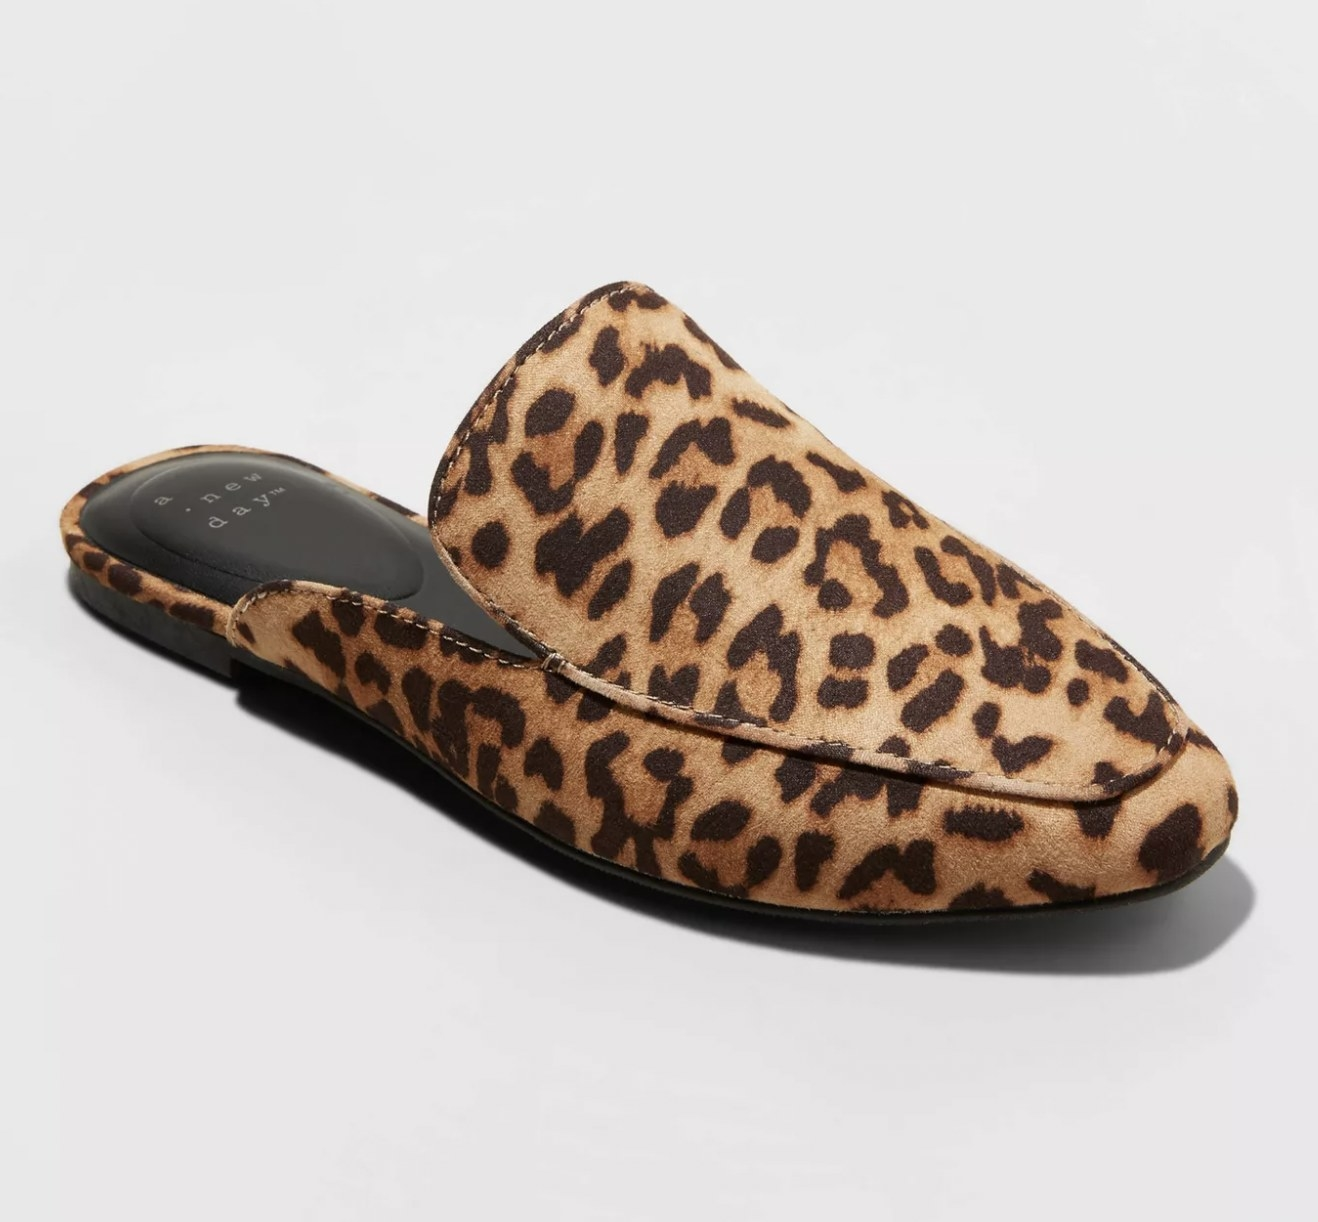 Slip on shoes with animal print